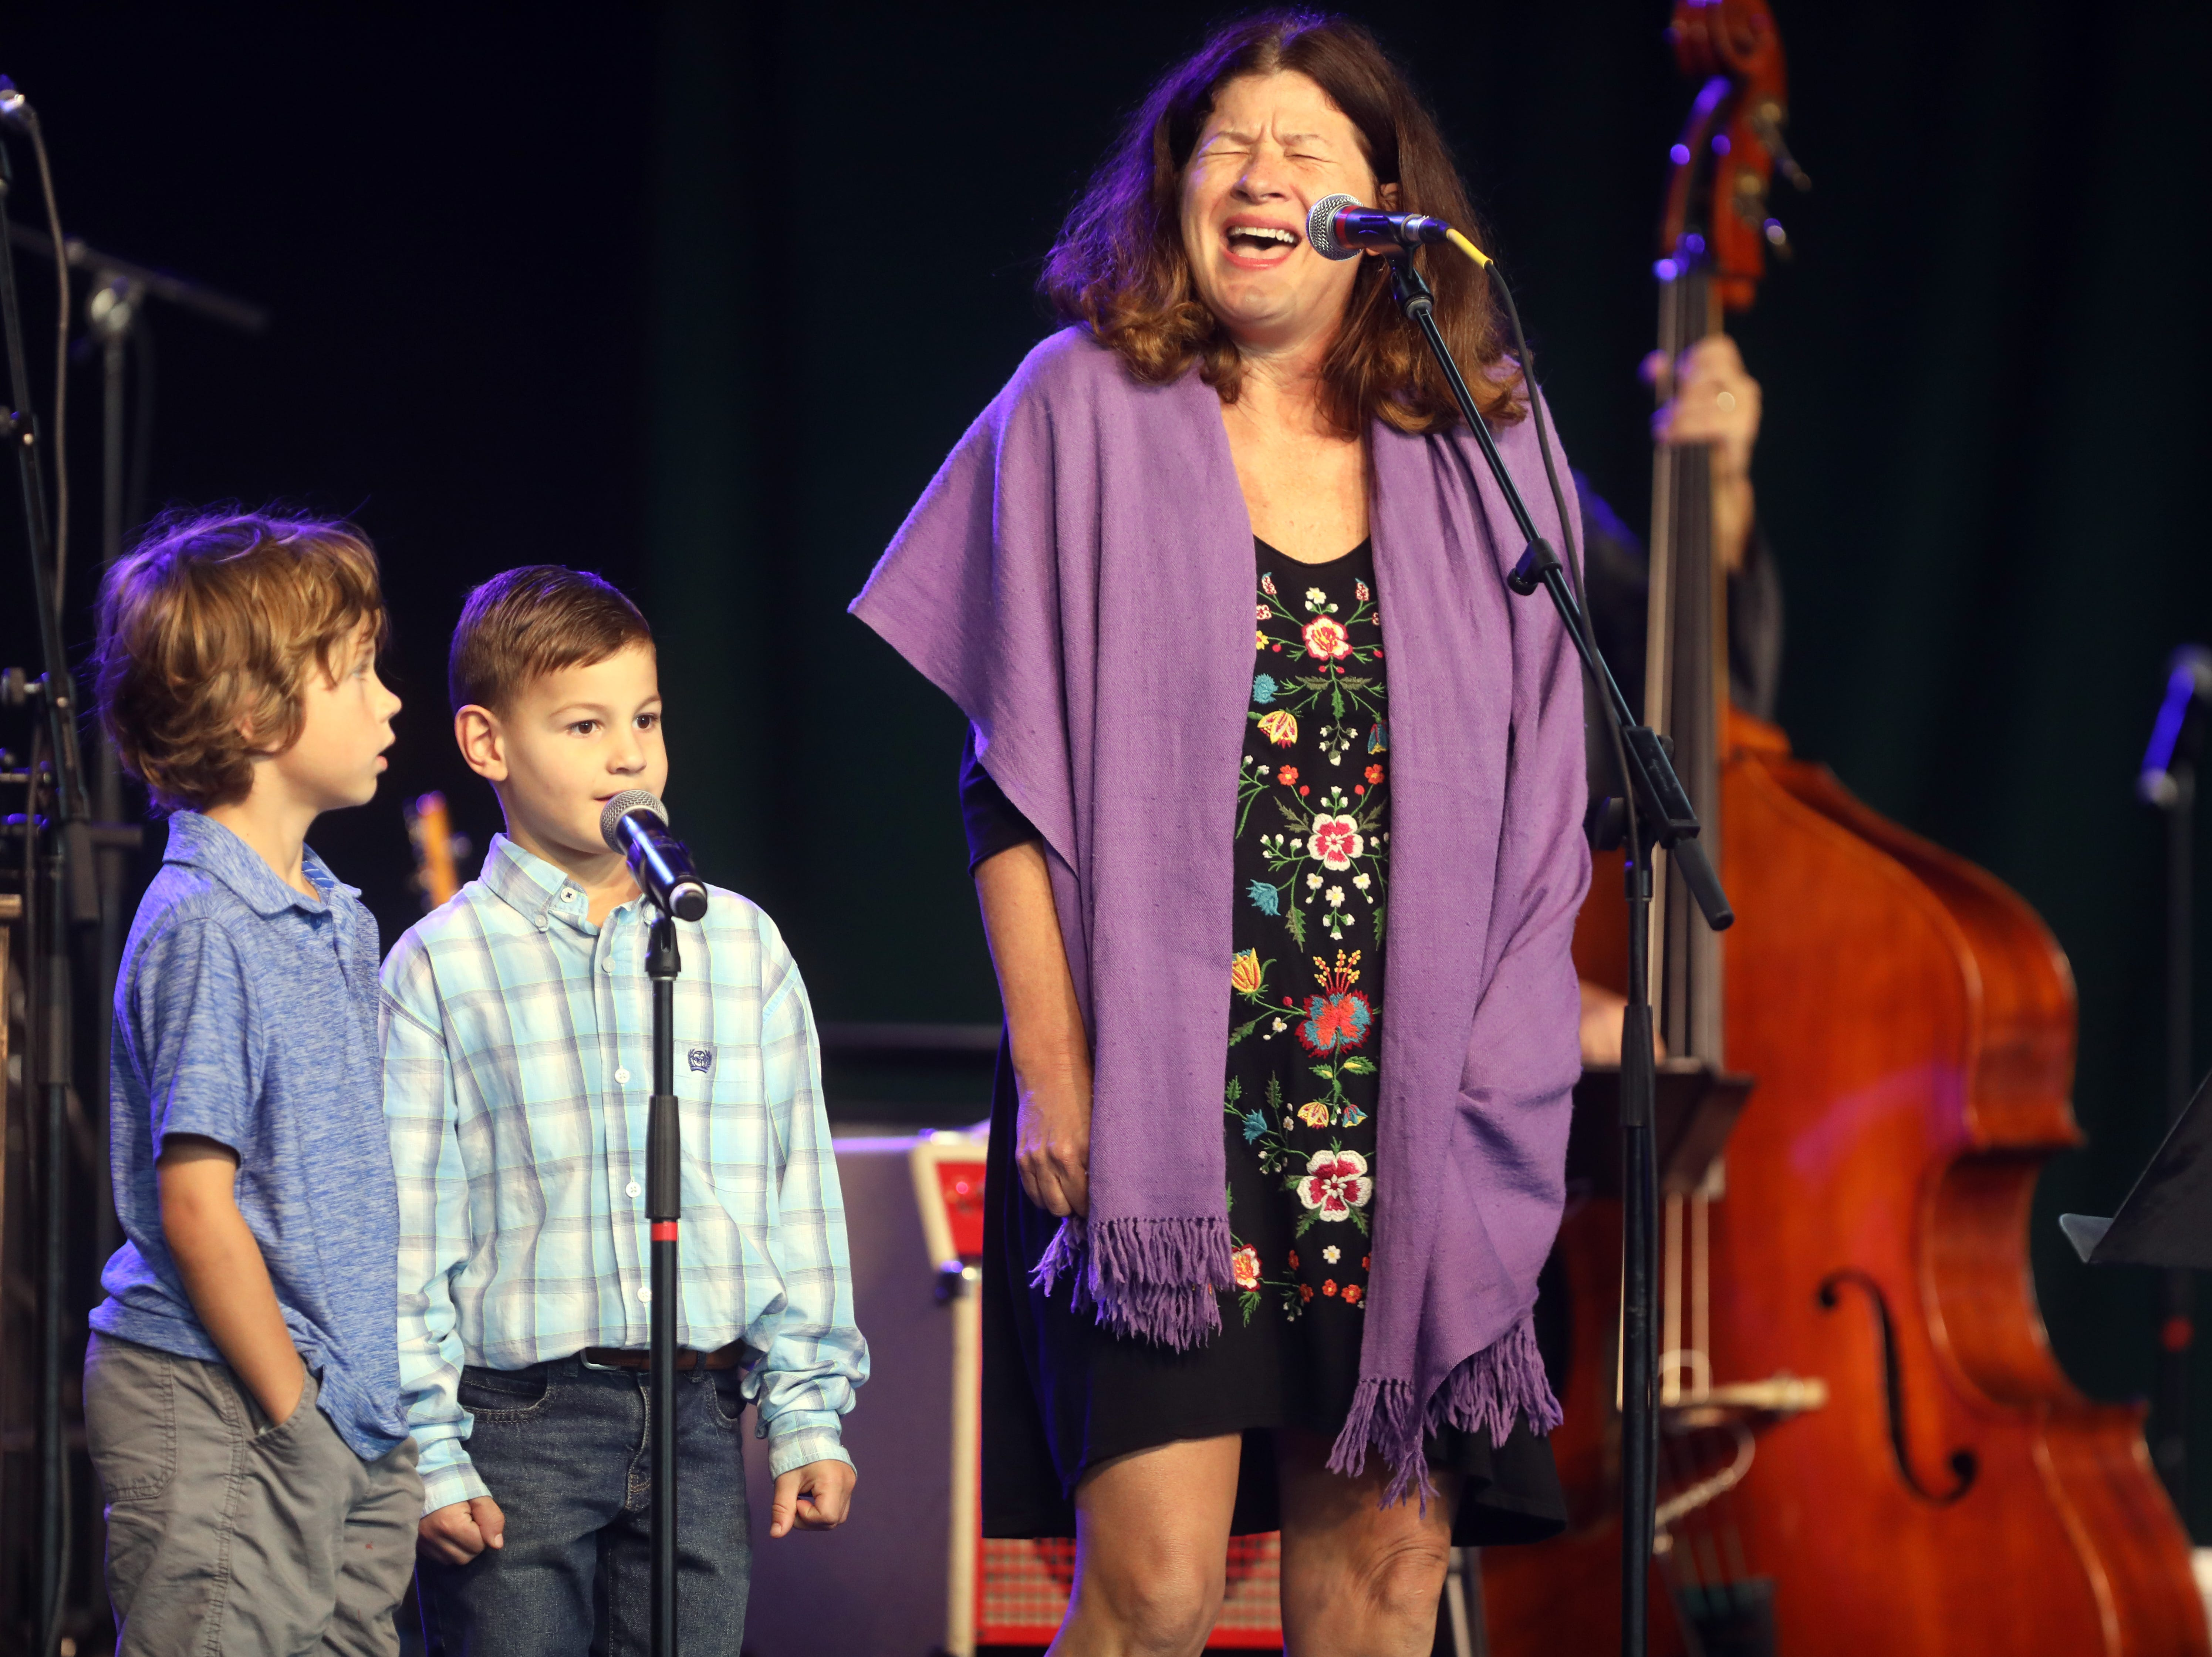 Michelle White performs with Miles White, far left, and Gus White, center, during a Celebration of Life service held for singer-songwriter Tony Joe White at Marathon Music Works Wednesday, October 31, 2018.